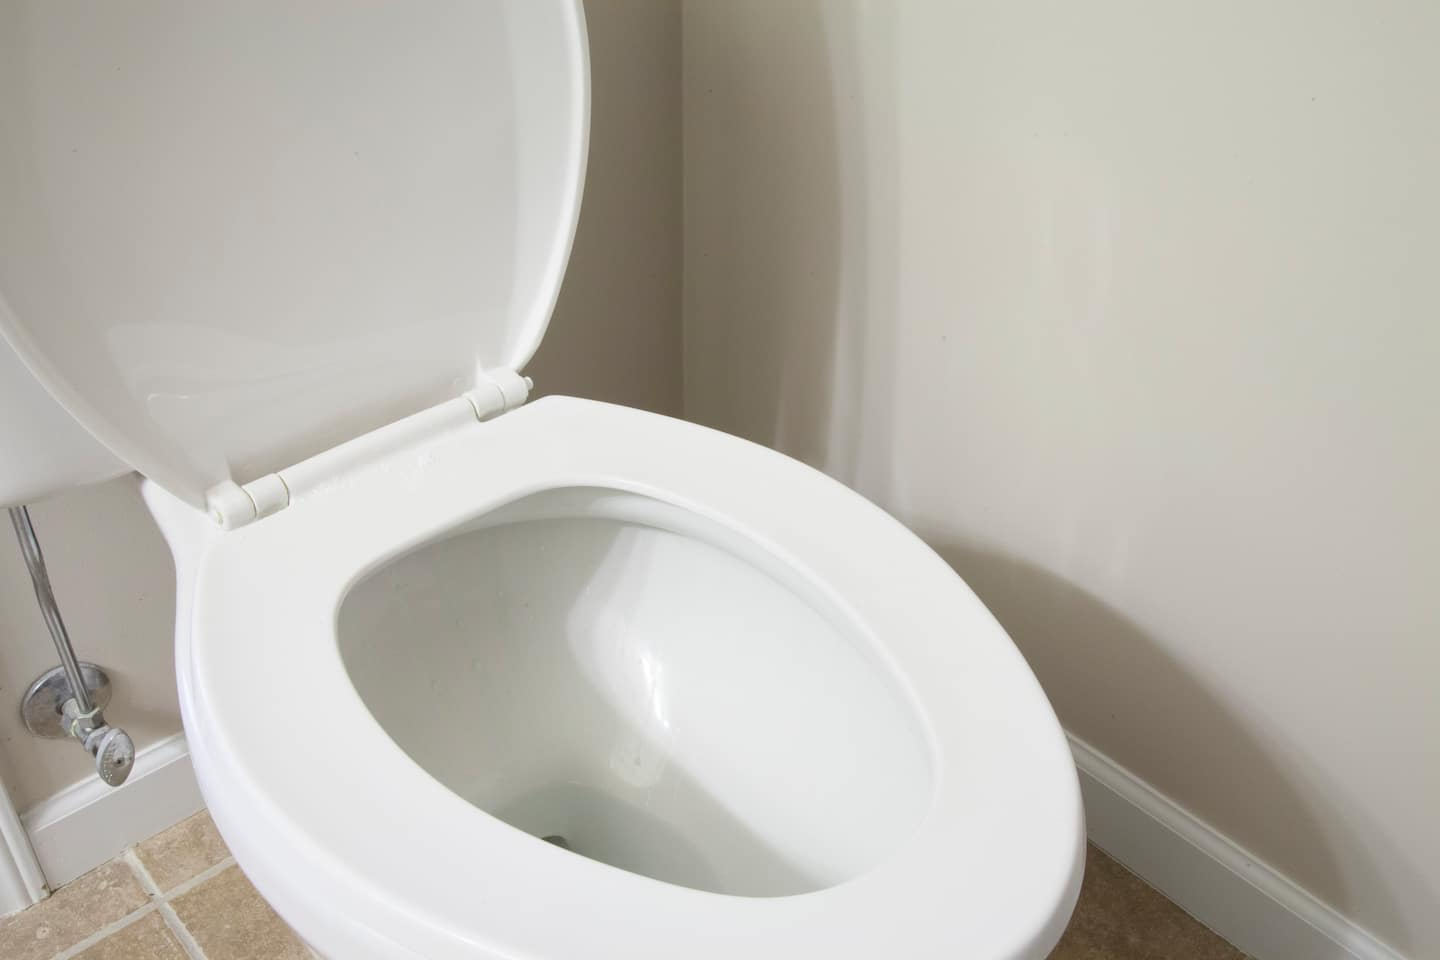 How Much Does Toilet Installation Cost? | Angie's List